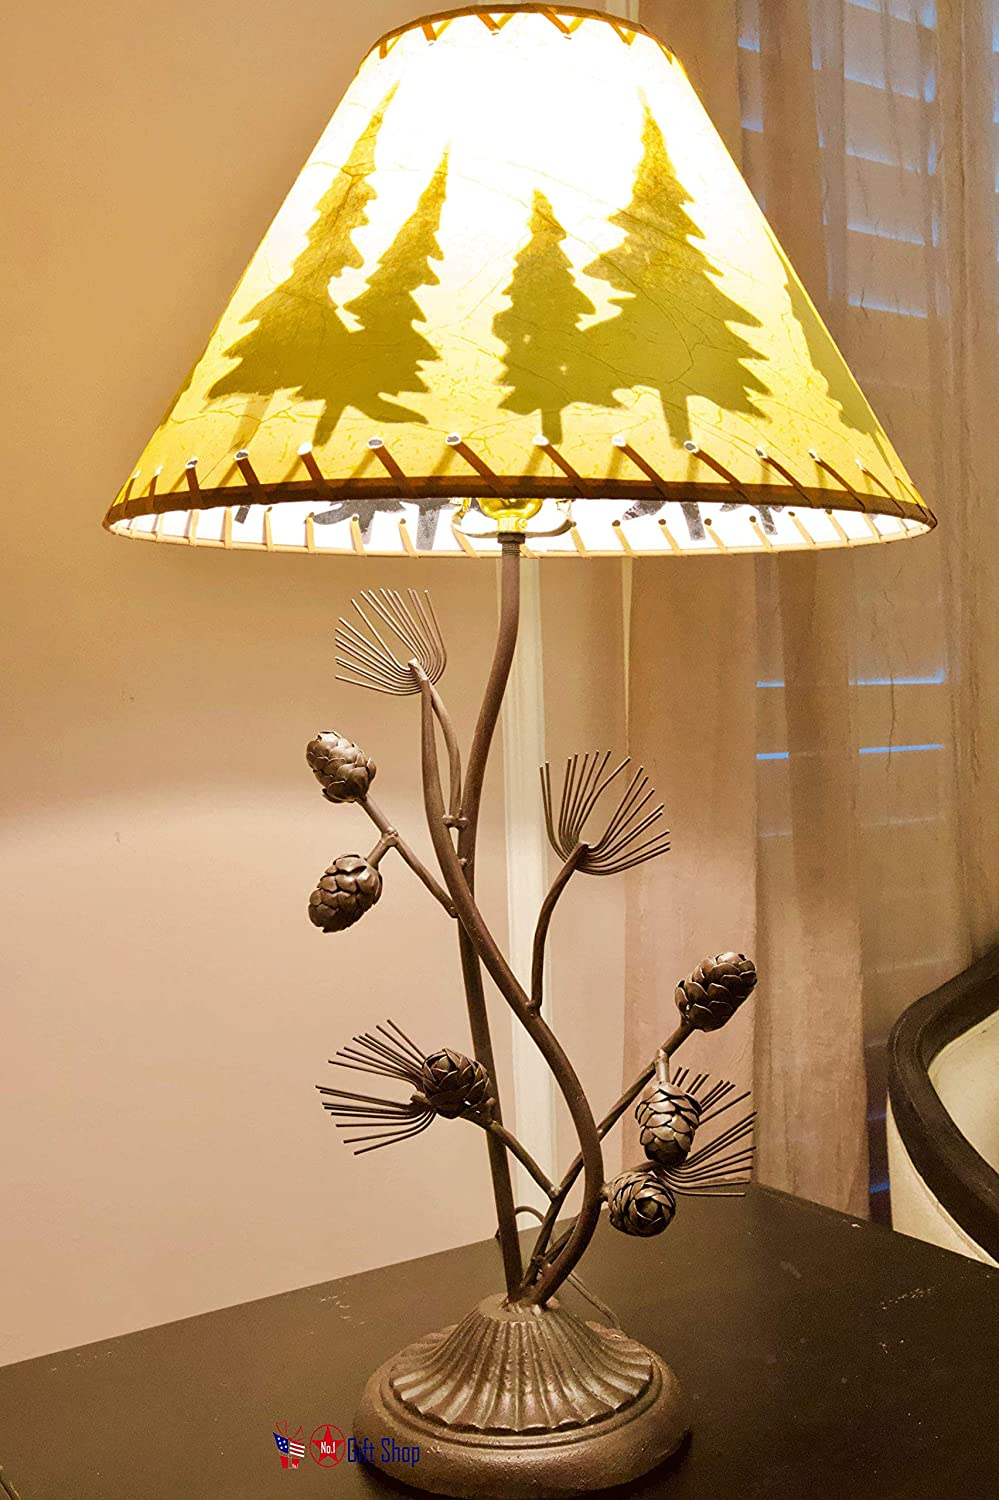 Metal Pine Cone Desk Table Lamp W/Shade Rustic Country Style Cabin Lodge Home Décor